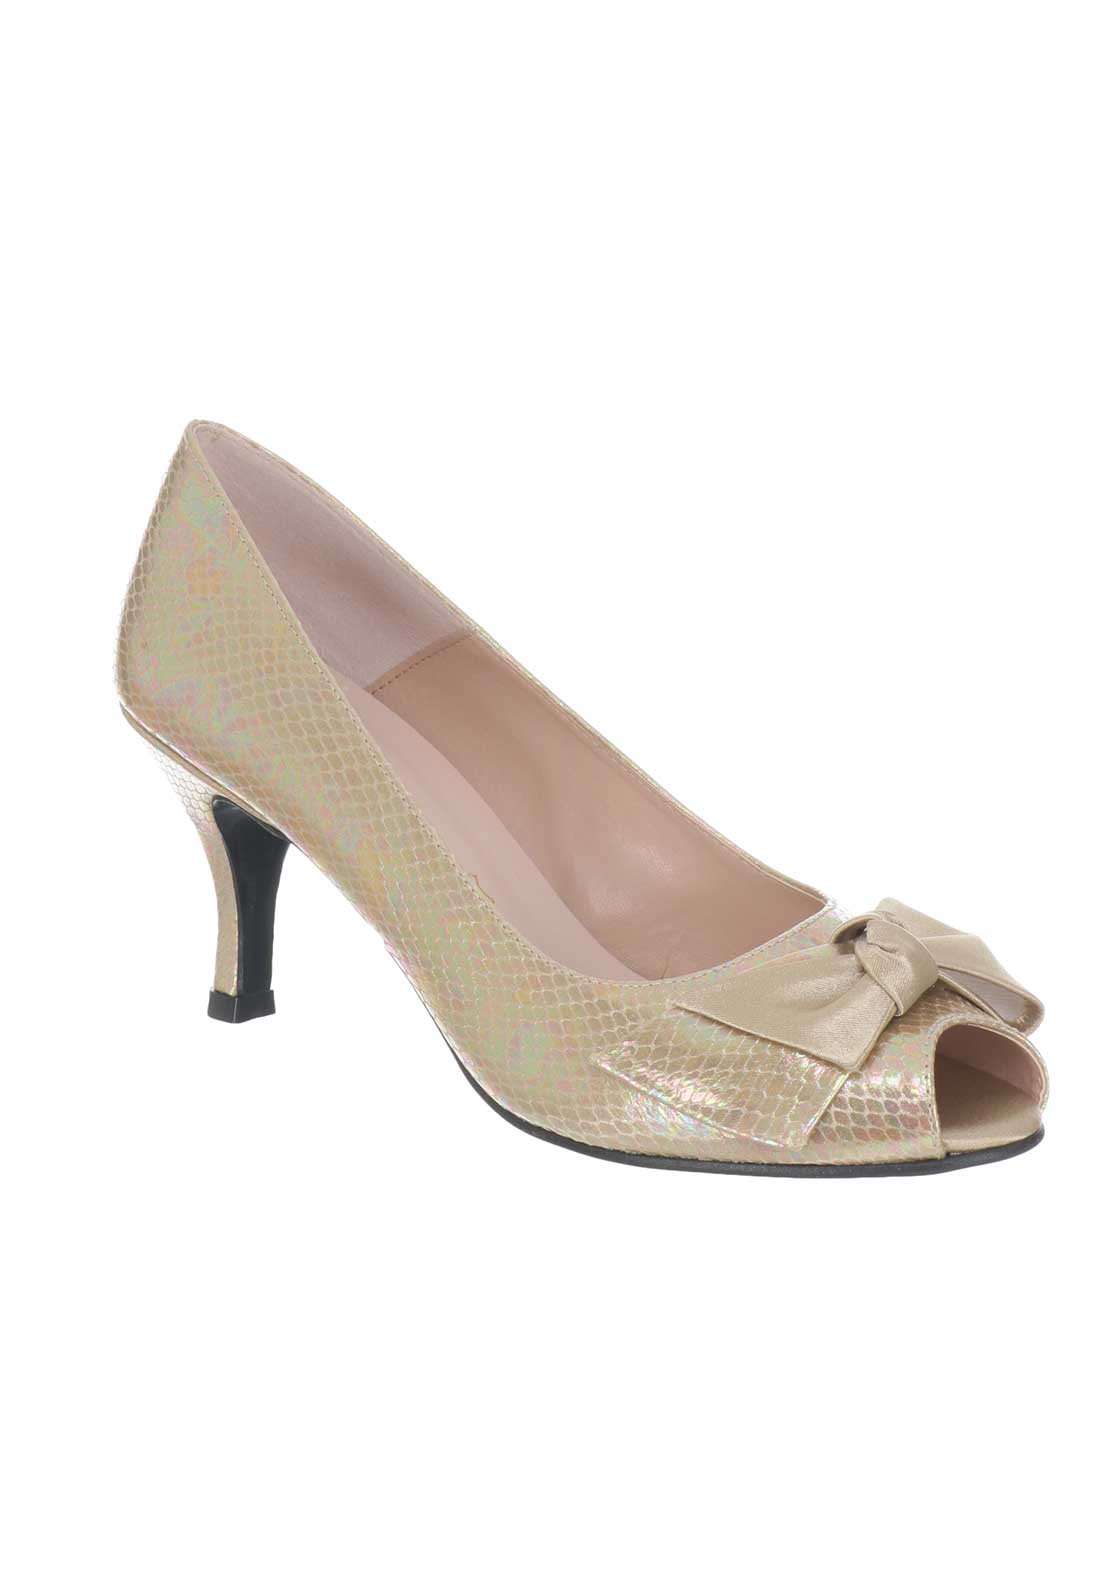 Ana Roman Iridescent Peep Toe Heeled Shoes, Gold